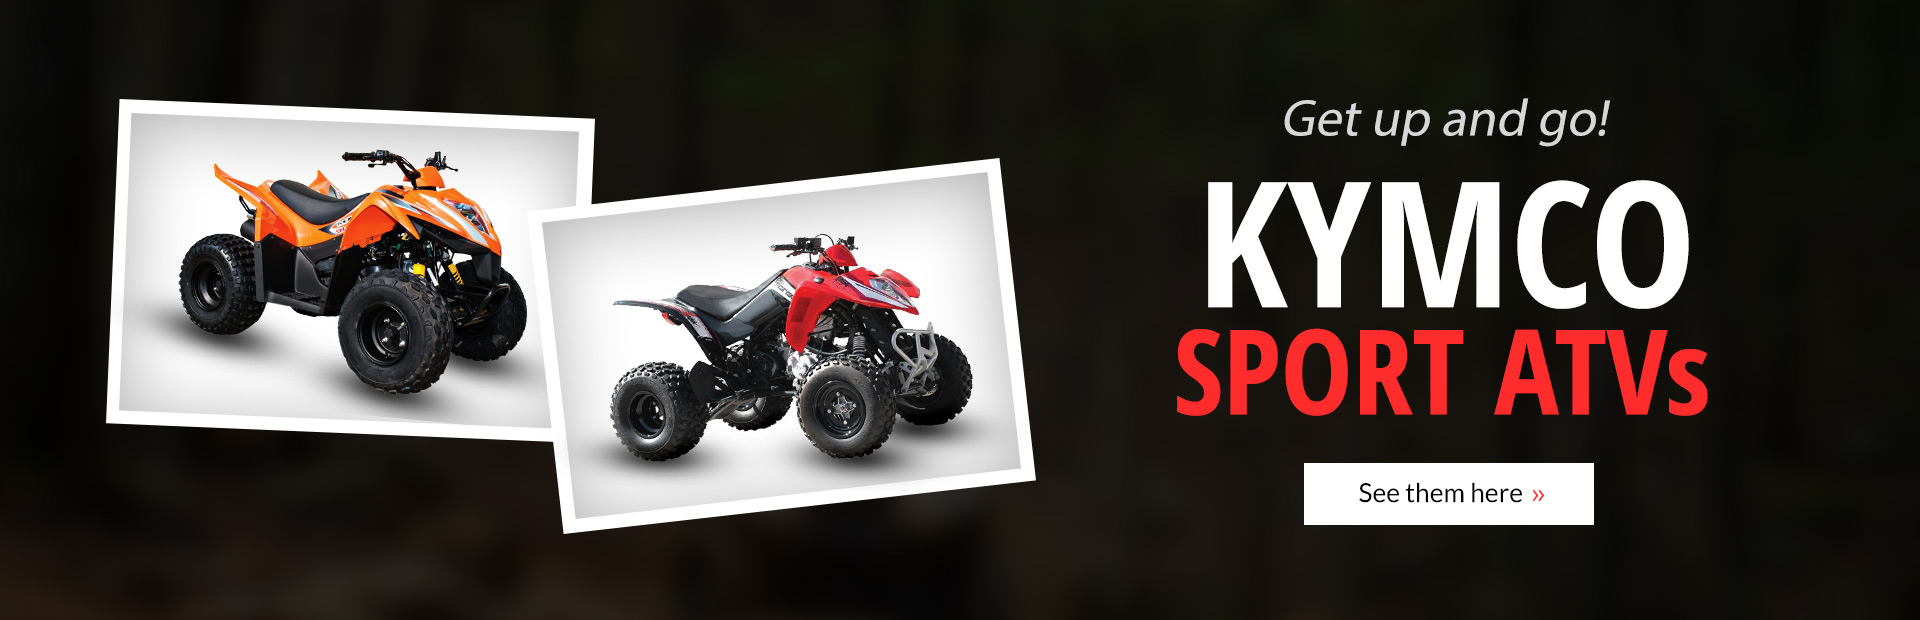 Kymco Sport ATVs: Click here to view the models.